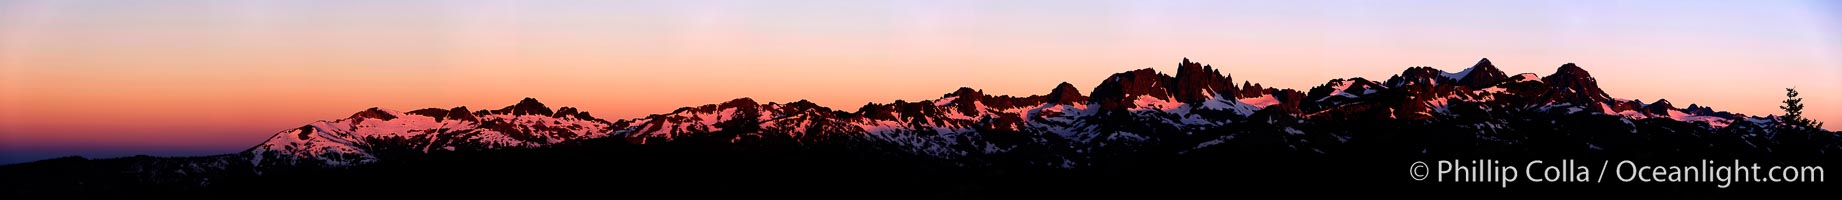 Panorama of the Minarets at sunrise, near Mammoth Mountain.  The Minarets are a series of seventeen jagged peaks in the Ritter Range, west of Mammoth Mountain in the Ansel Adams Wilderness.  These basalt peaks were carved by glaciers on both sides of the range.  The highest of the Minarets stands 12,281 feet above sea level. Mammoth Lakes, California, USA, natural history stock photograph, photo id 19126